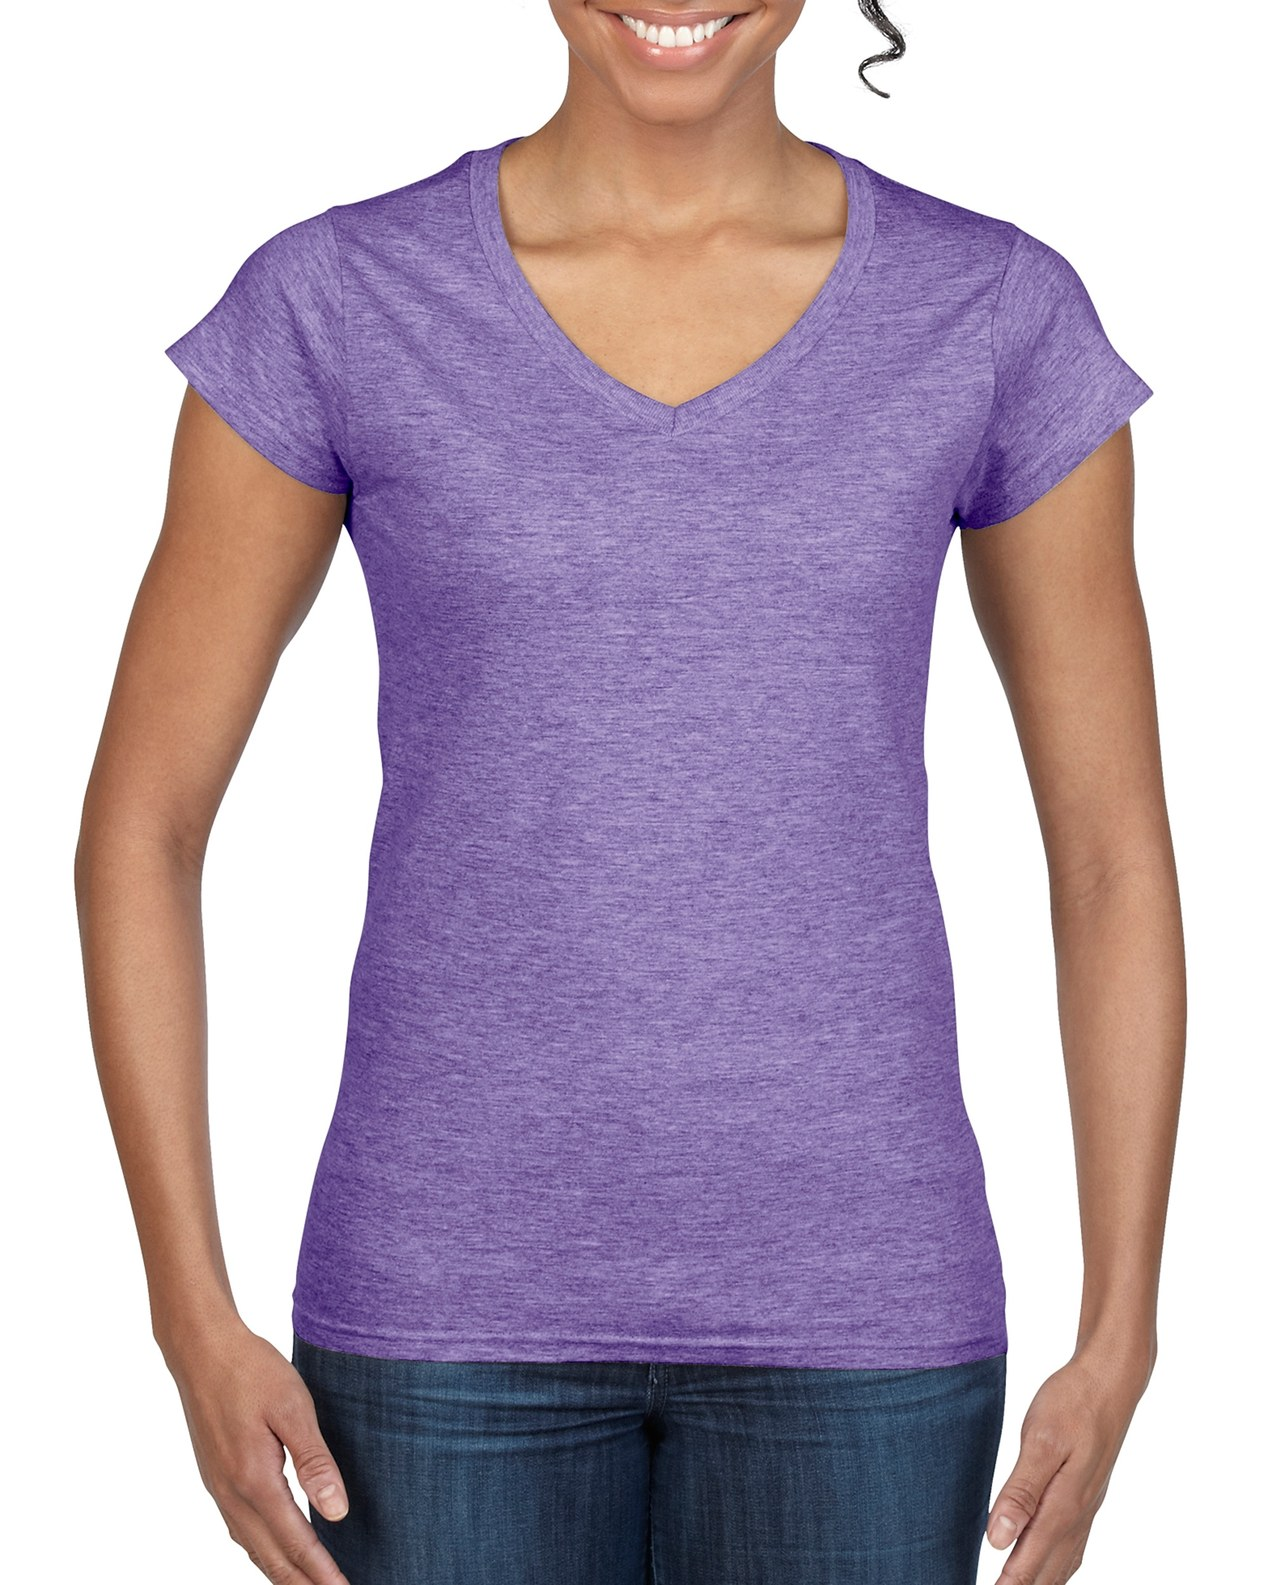 64V00L | Gildan Softstyle® | 4 5 oz/yd² | Ladies' V-Neck T